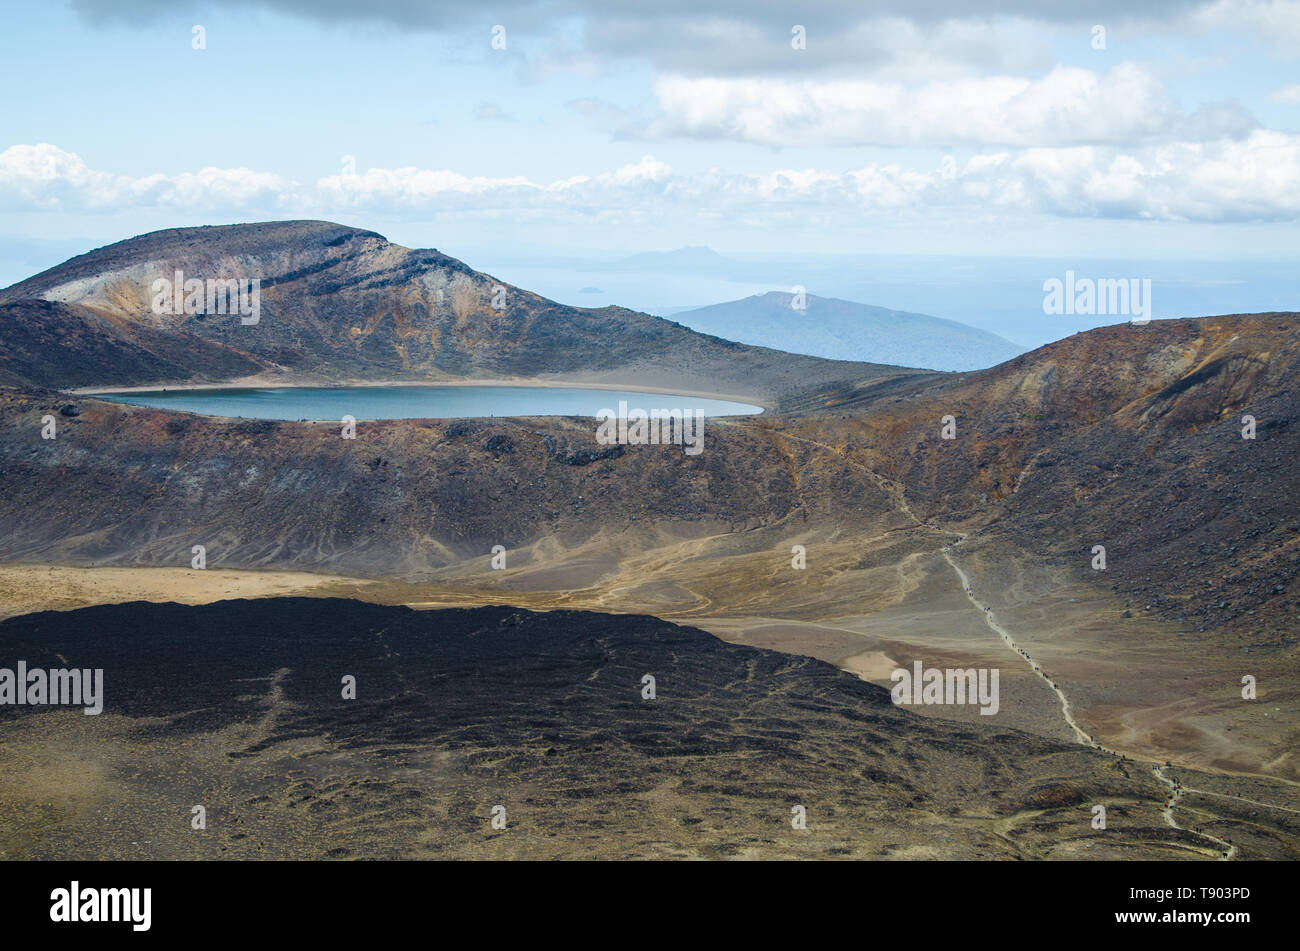 View of Blue lake from Tongariro Alpine Crossing hike with clouds above, North Island, New Zealand. - Stock Image